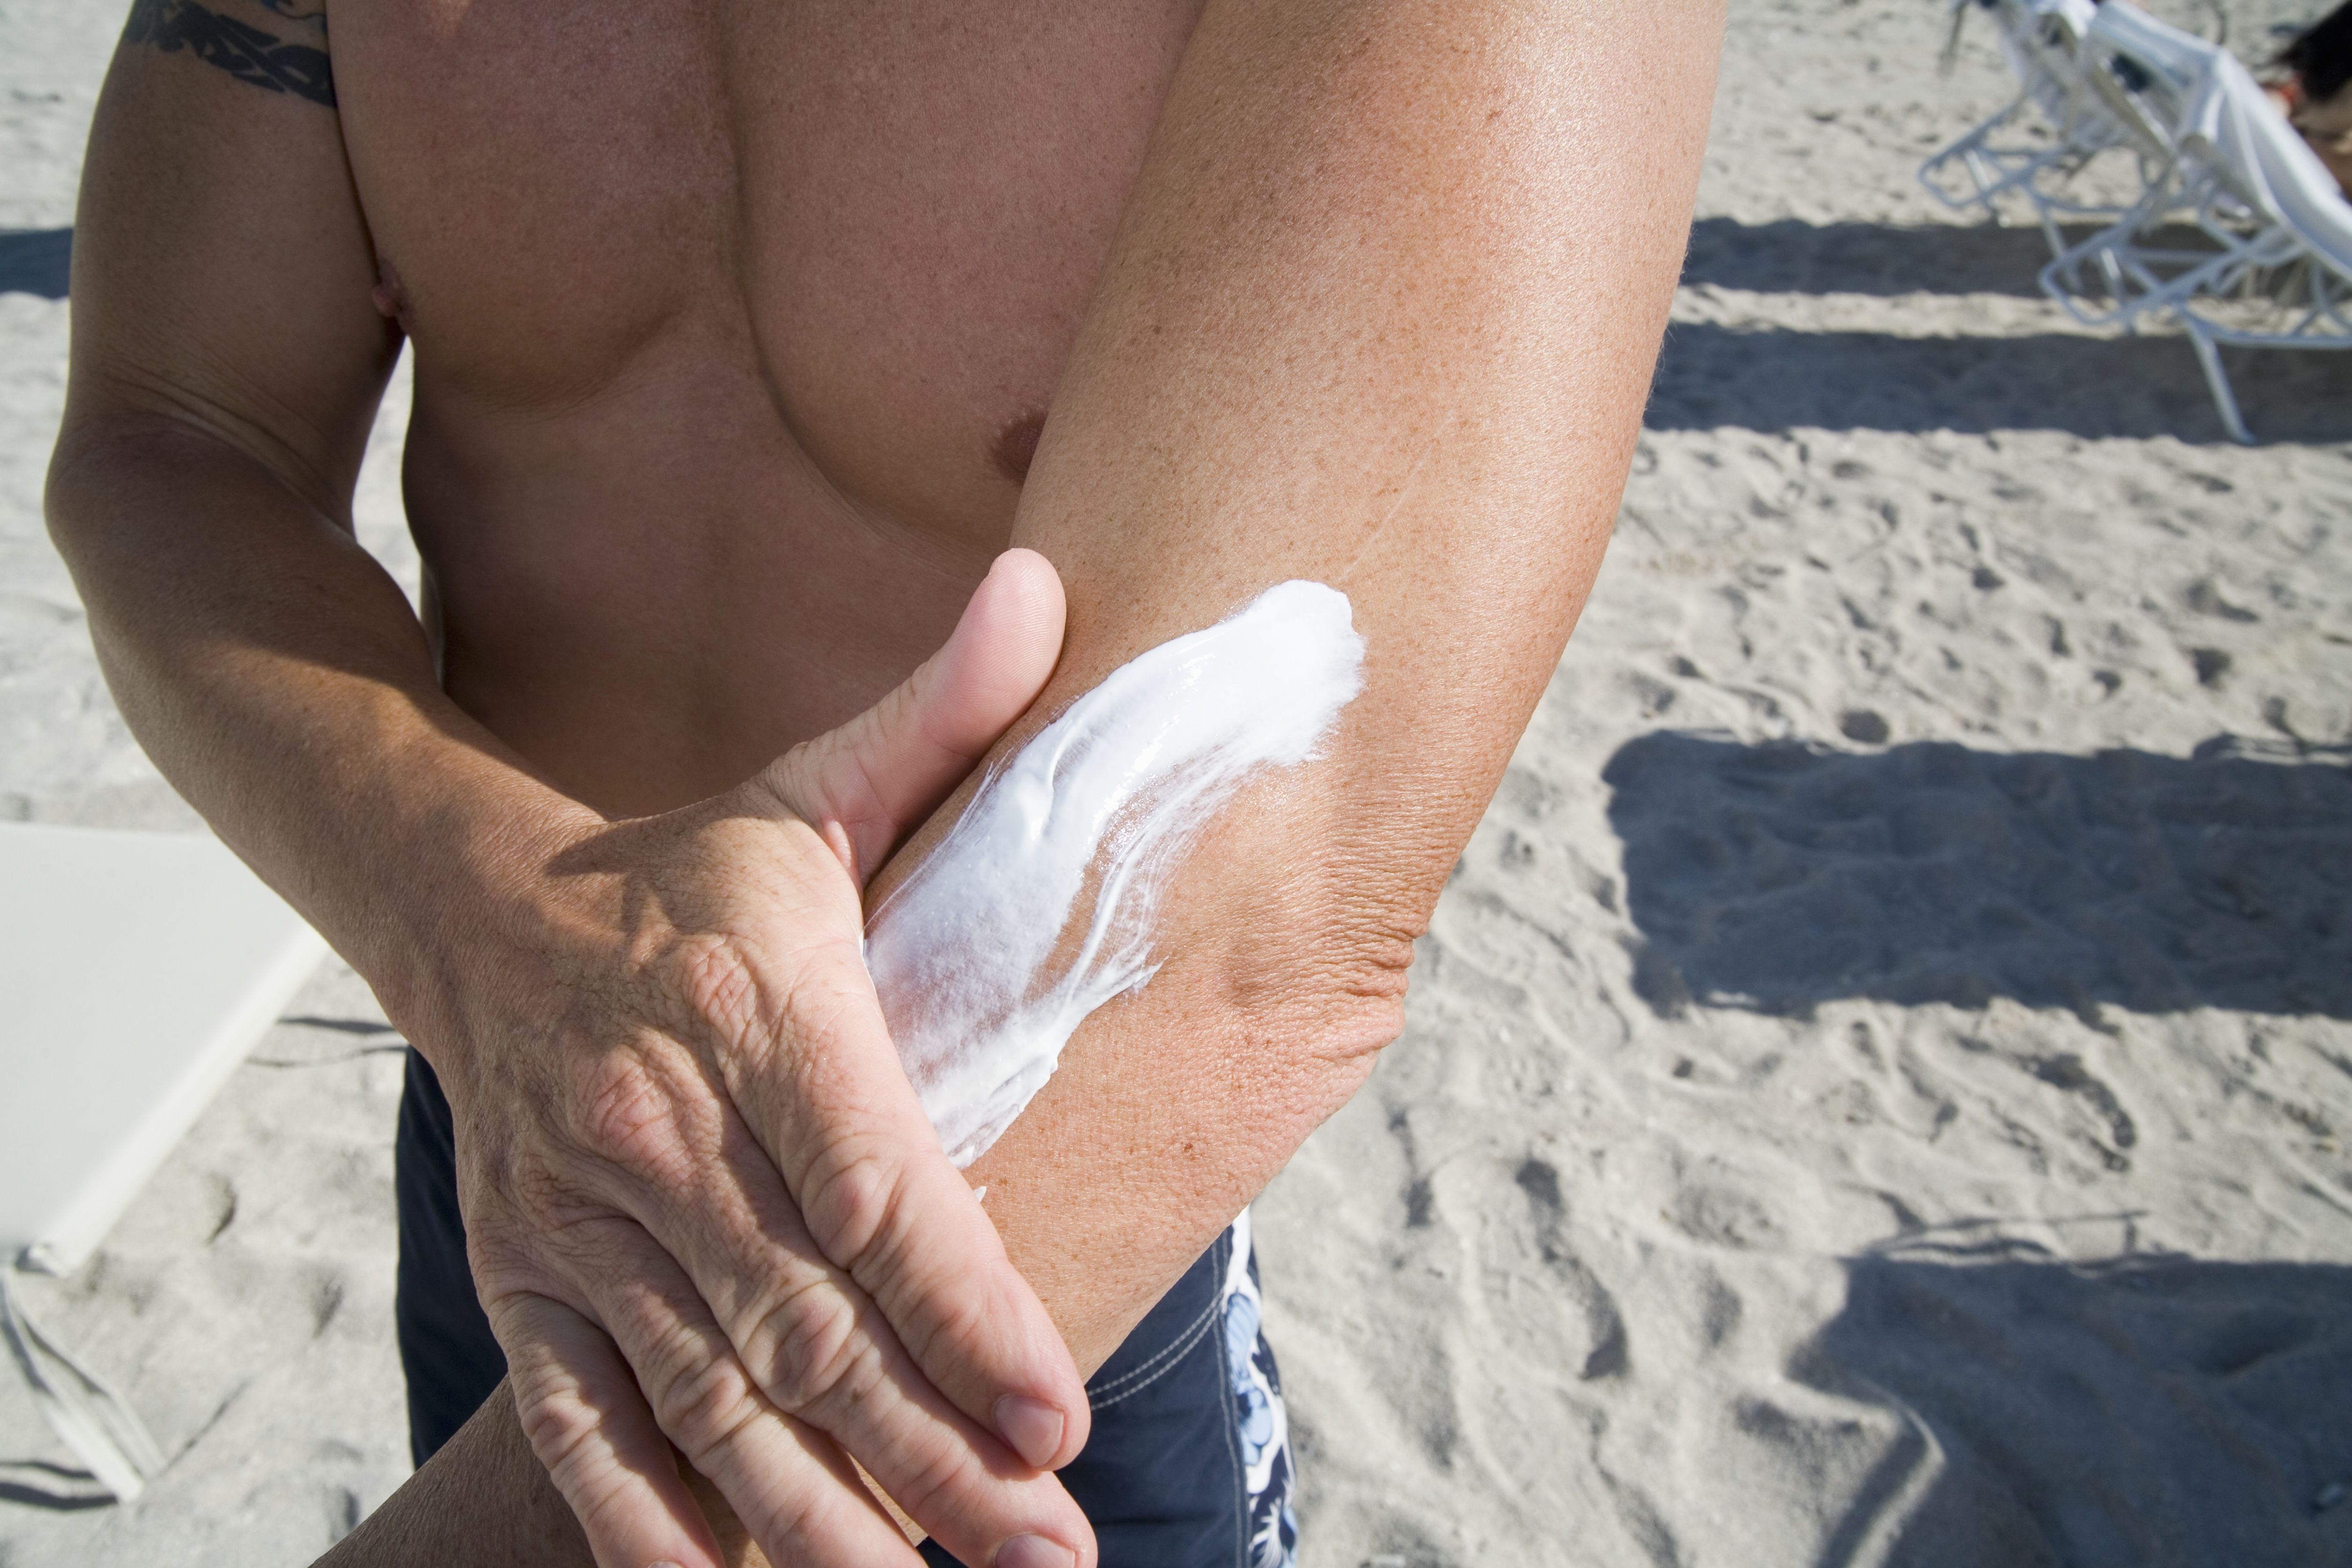 Two-Thirds of Sunscreens Could Be Hurting You, Report Says